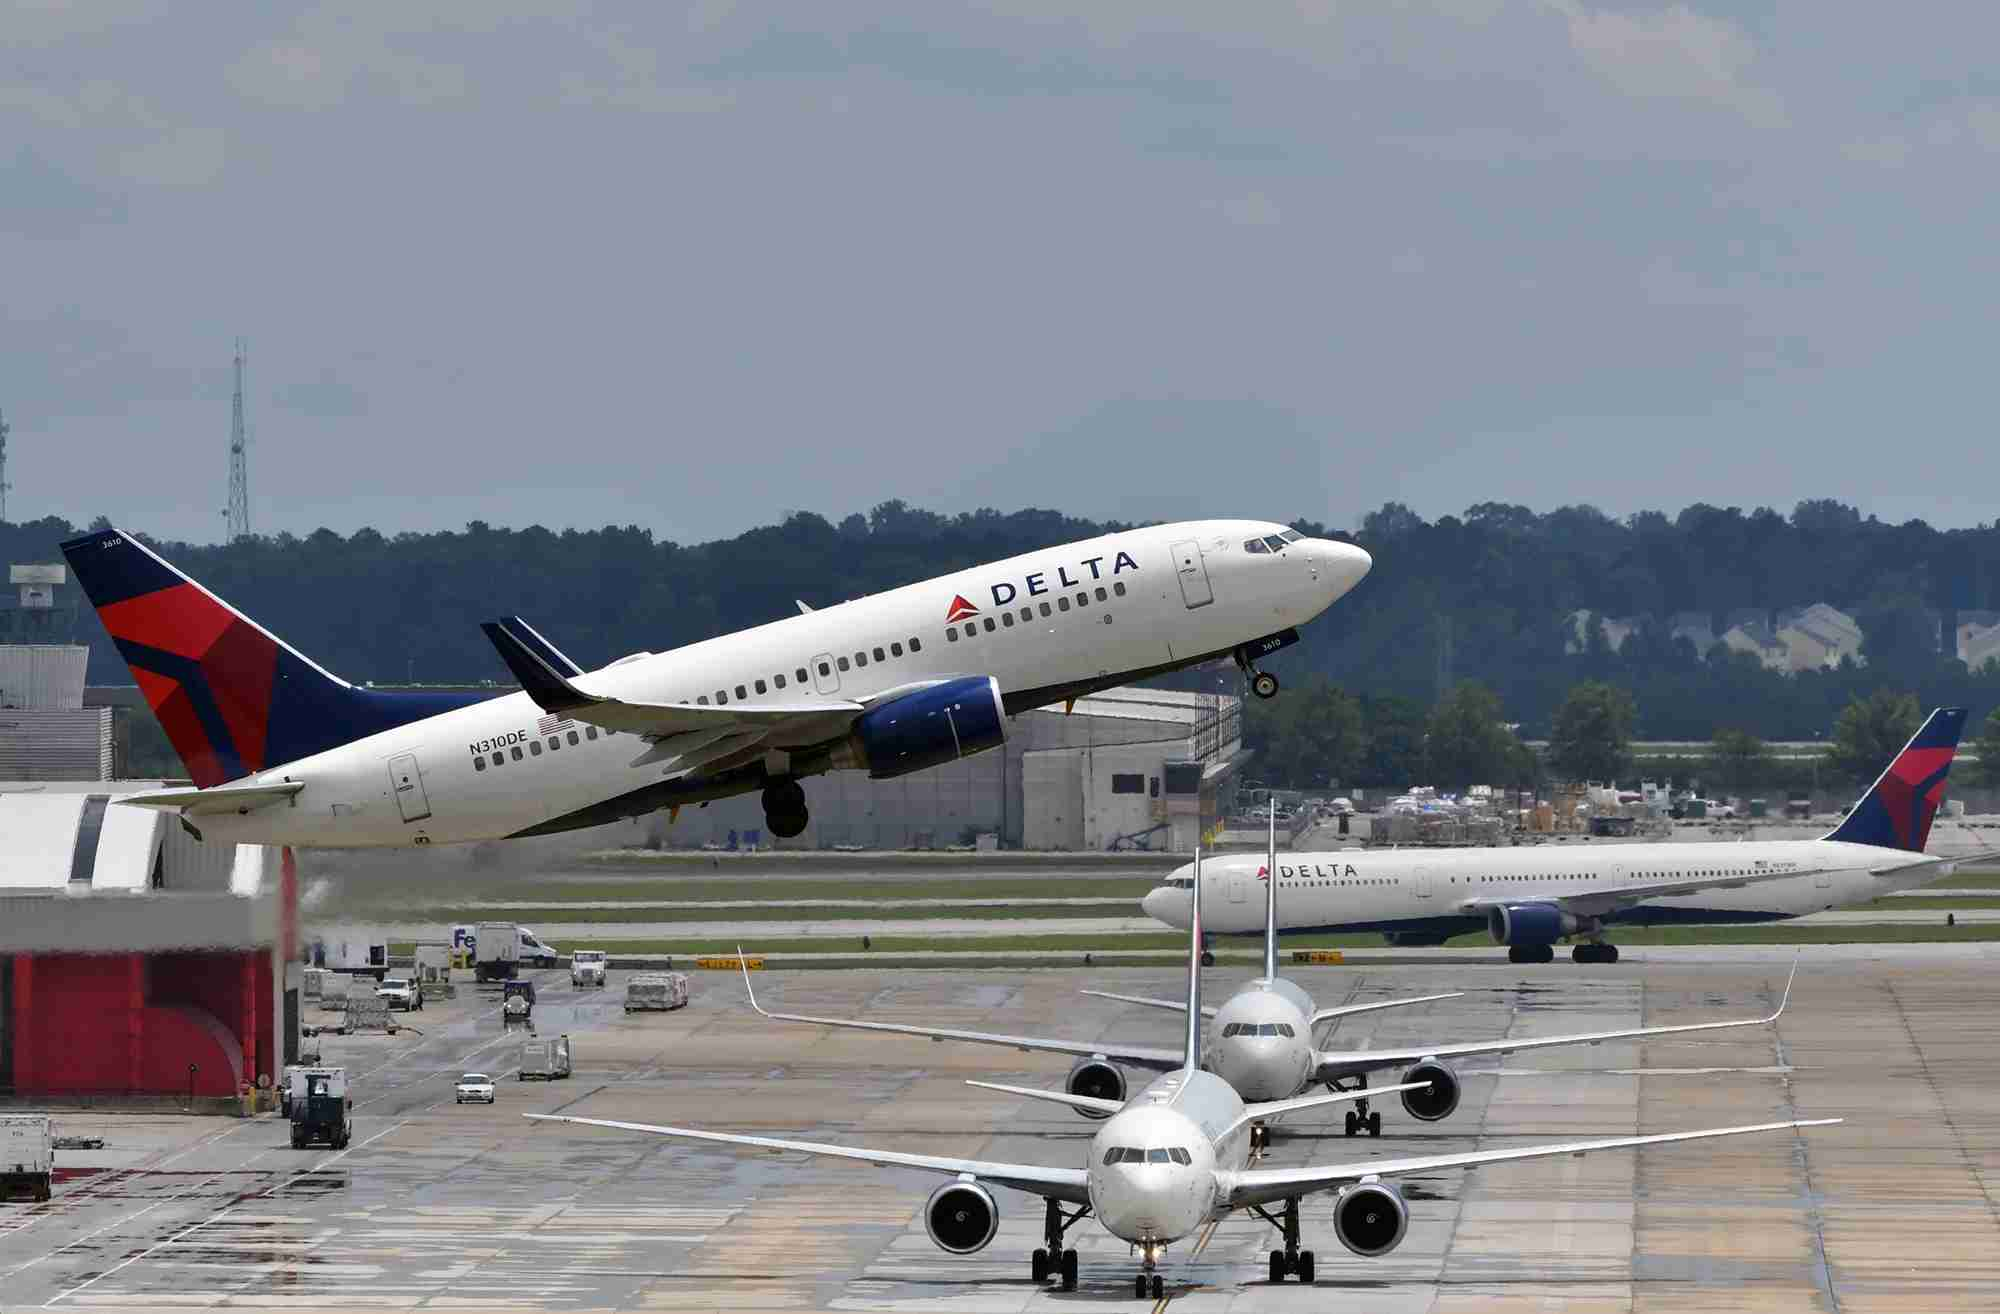 A Delta Airlines Boeing 737-700 takes off from Atlanta (Photo by Alberto Riva/The Points Guy)